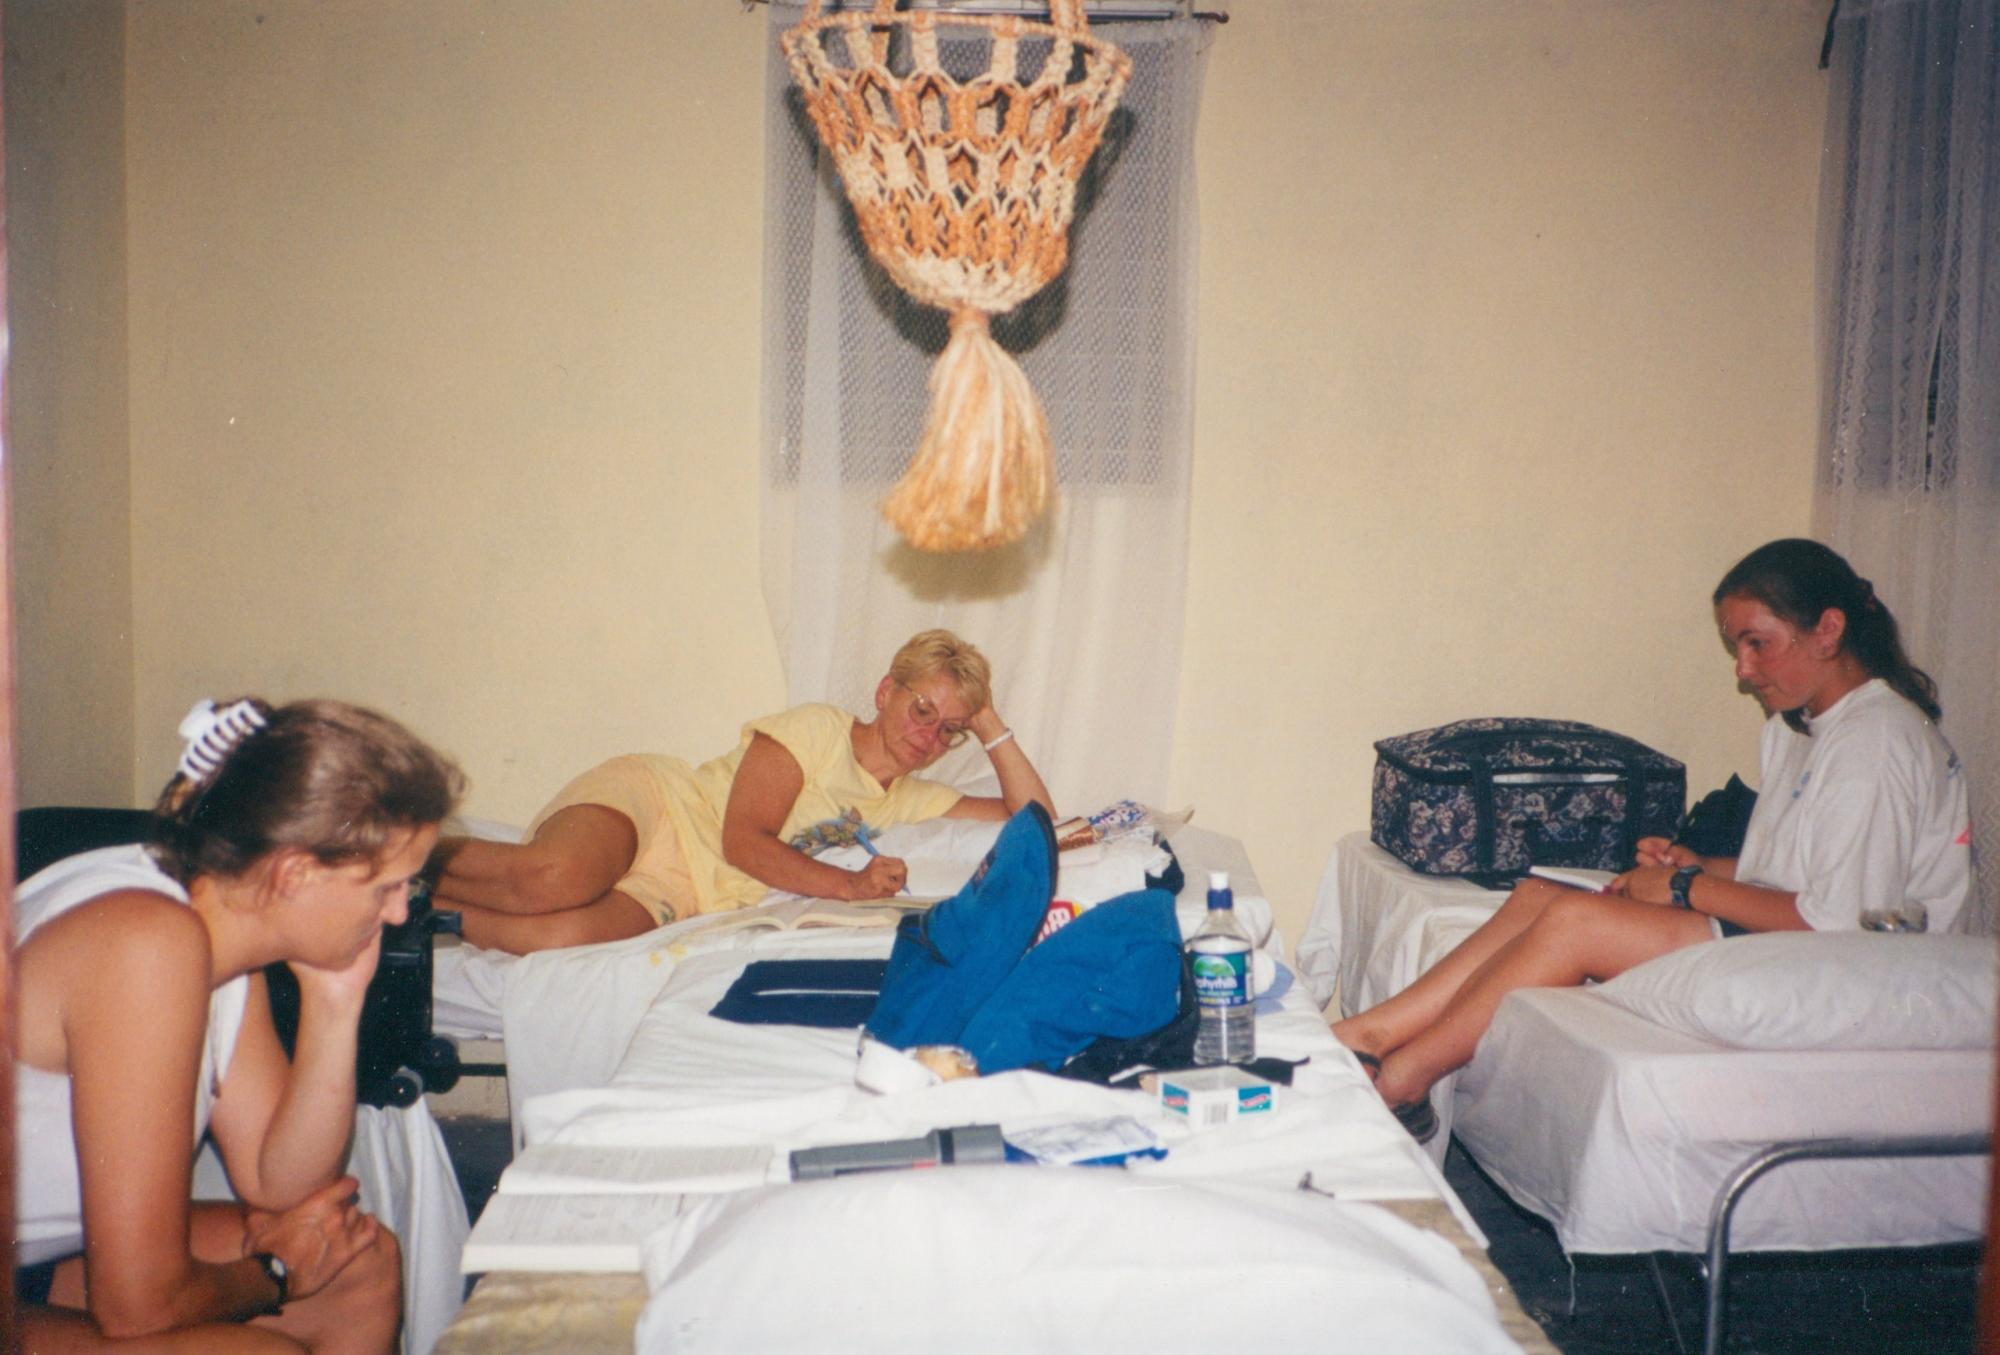 Female_Team_members_relax_in_womens_room_circa_2000_image56.jpg